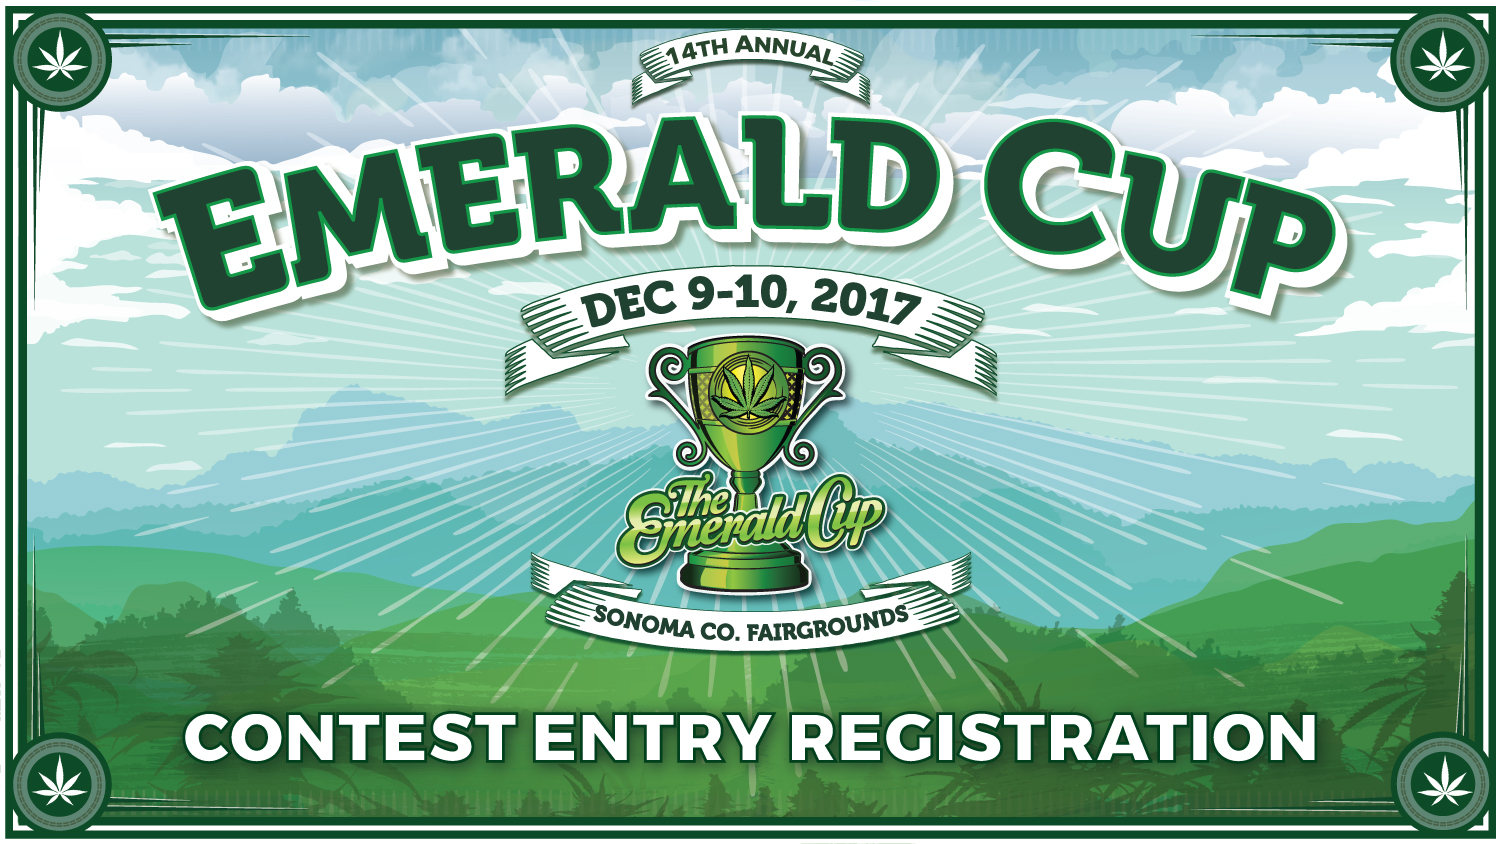 Tickets for 2017 Emerald Cup Contest Entry-Not an Event Ticket in Santa Rosa from ShowClix